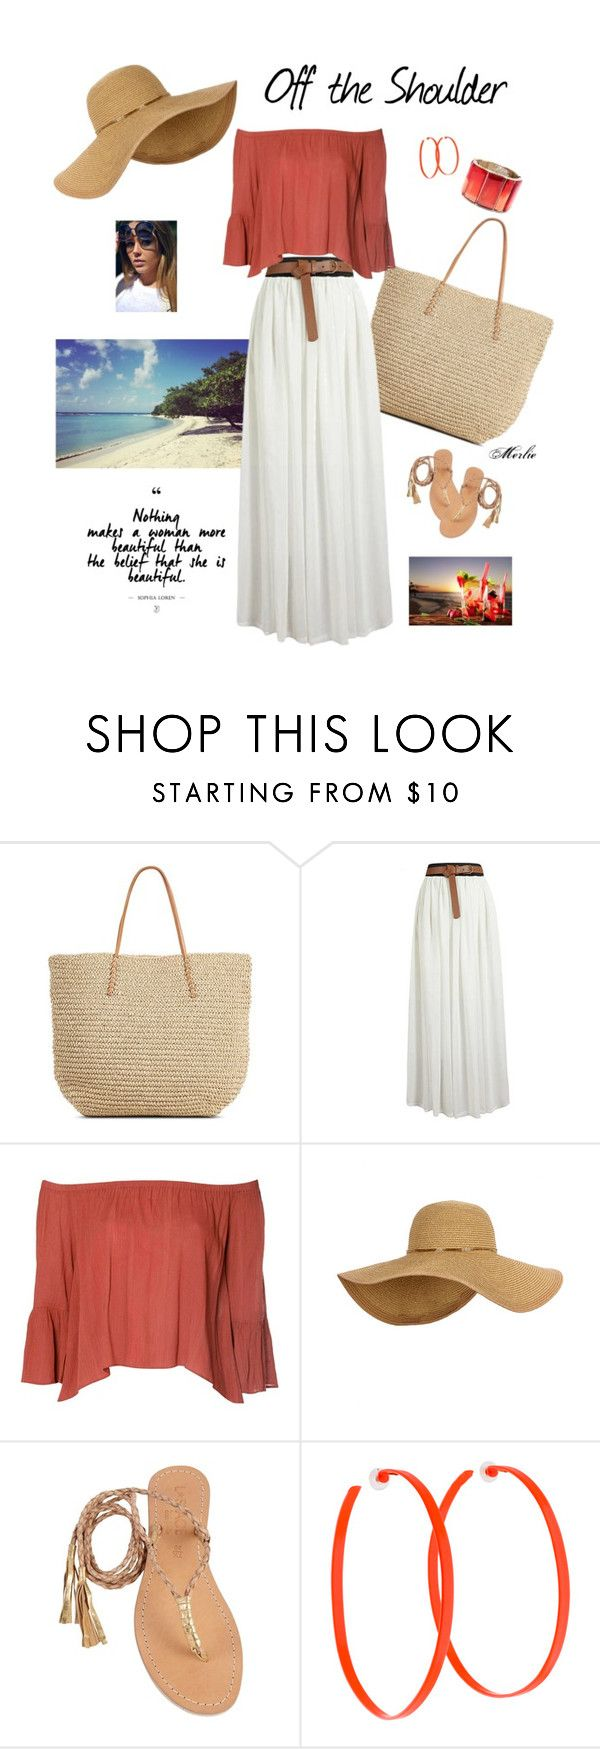 """""""Off the Shoulder"""" by mduncan0417 ❤ liked on Polyvore featuring Target, Glamorous, Cocobelle, Alexis Bittar and Oscar de la Renta"""